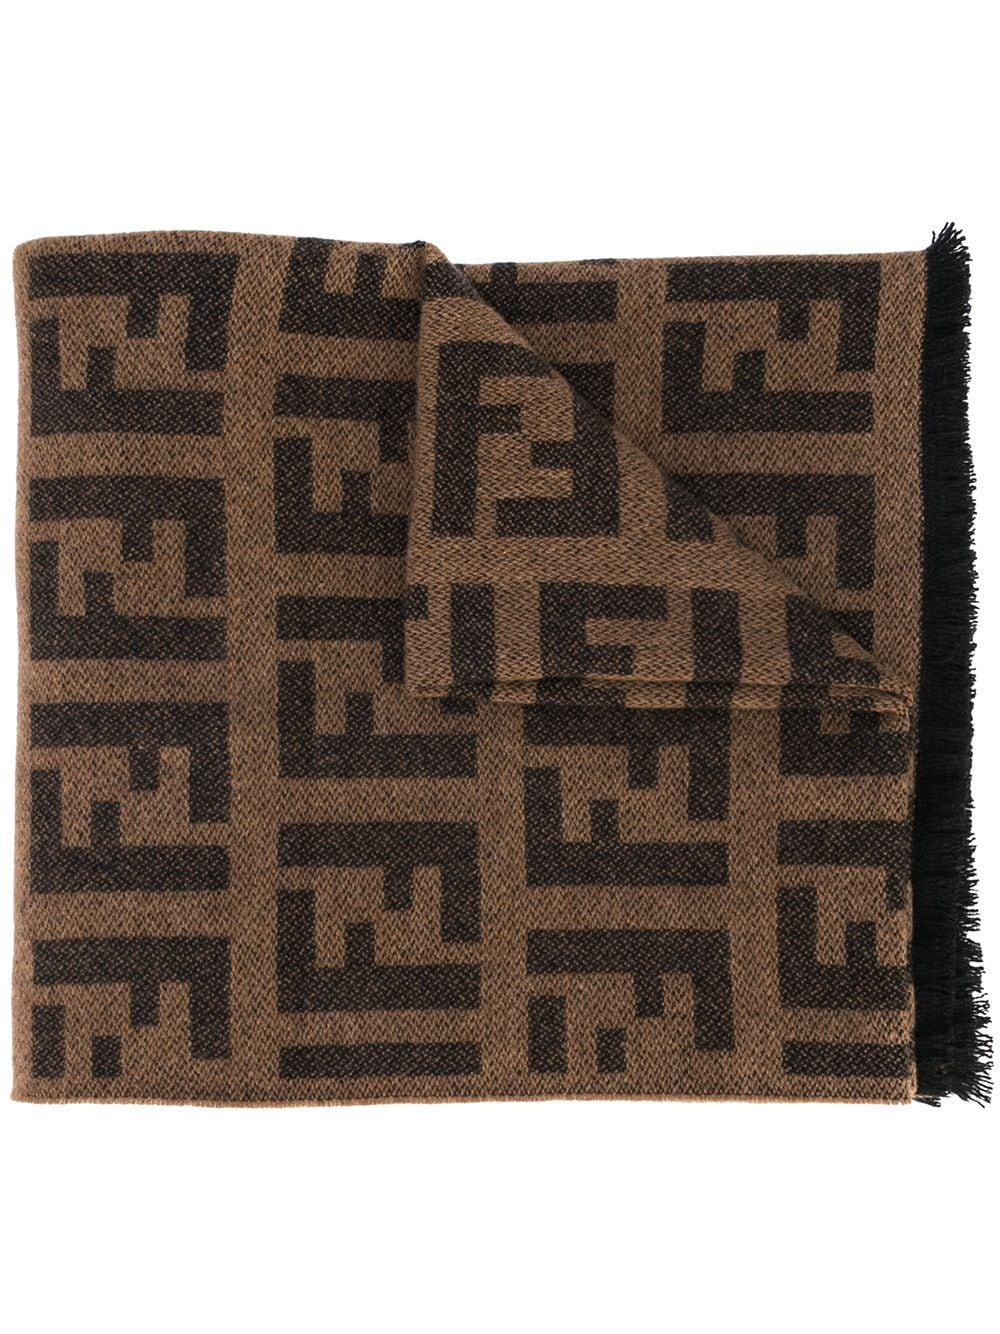 Seamless Pattern With Fendi Logo Design For 1